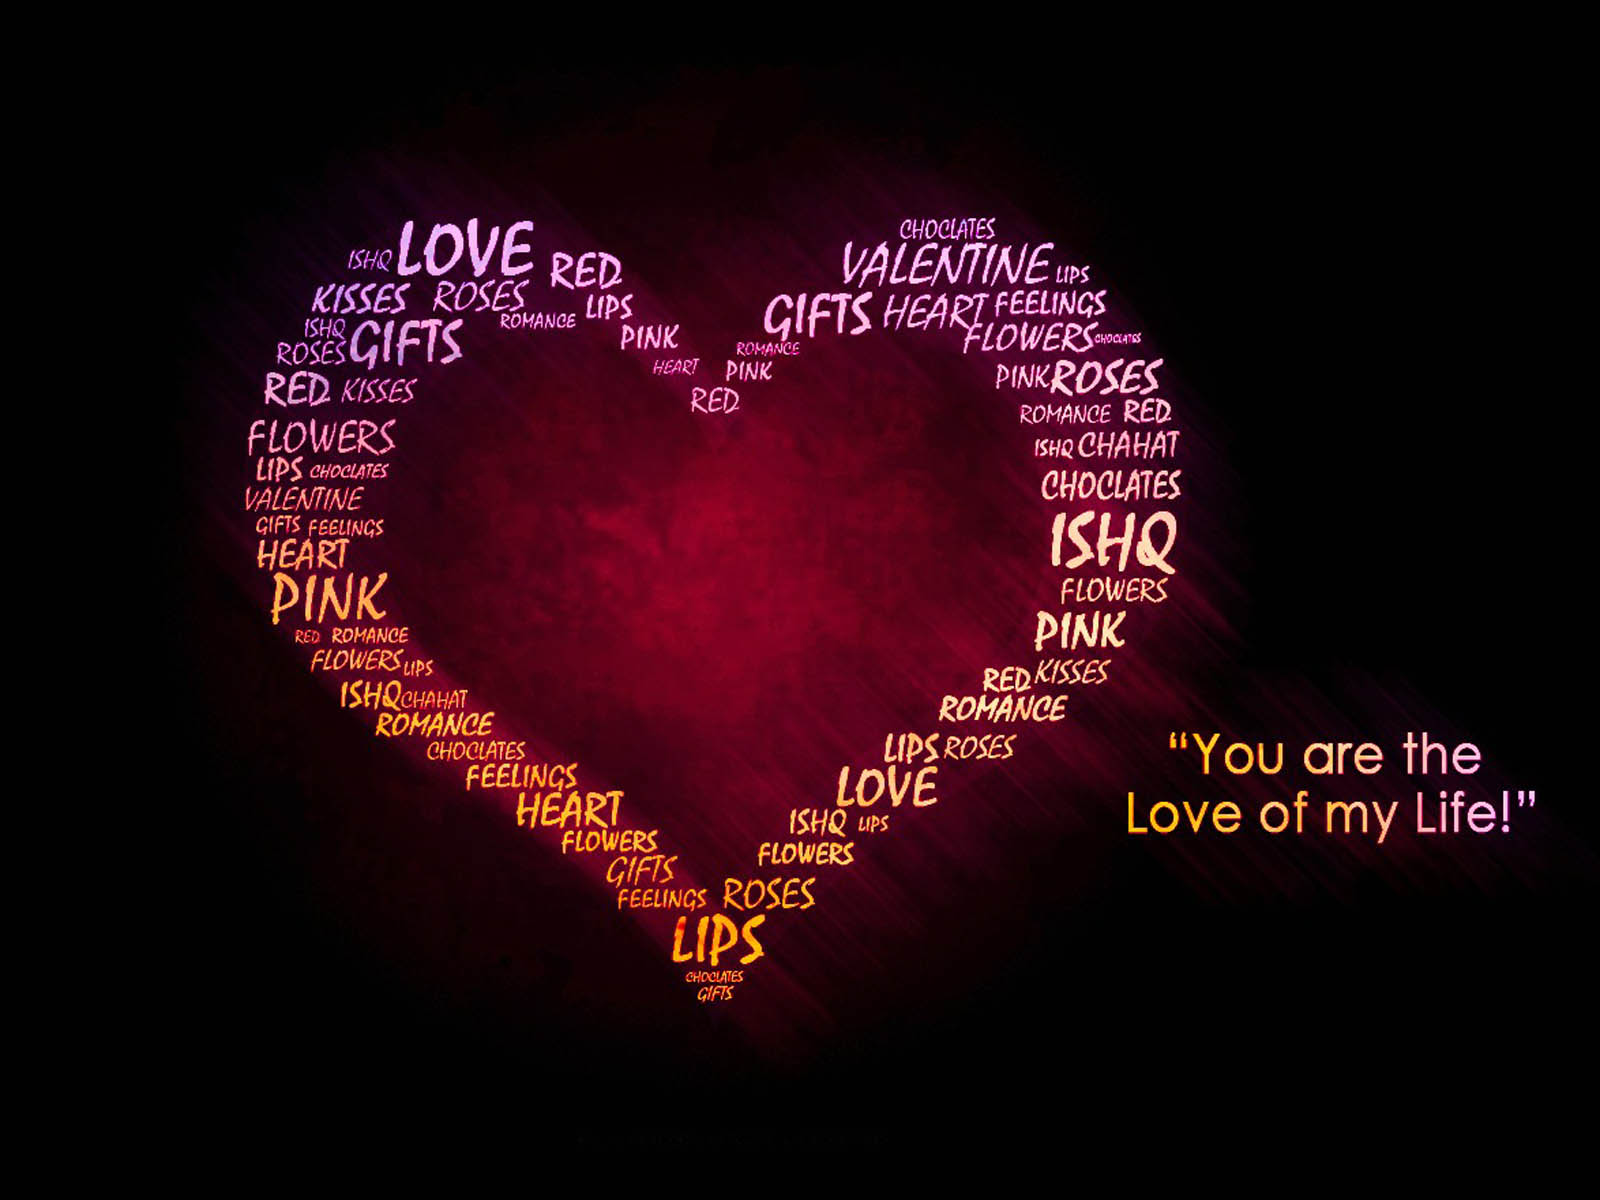 Love Quotes Wallpaper For Laptop : wallpapers: Love Quotes Desktop Wallpapers